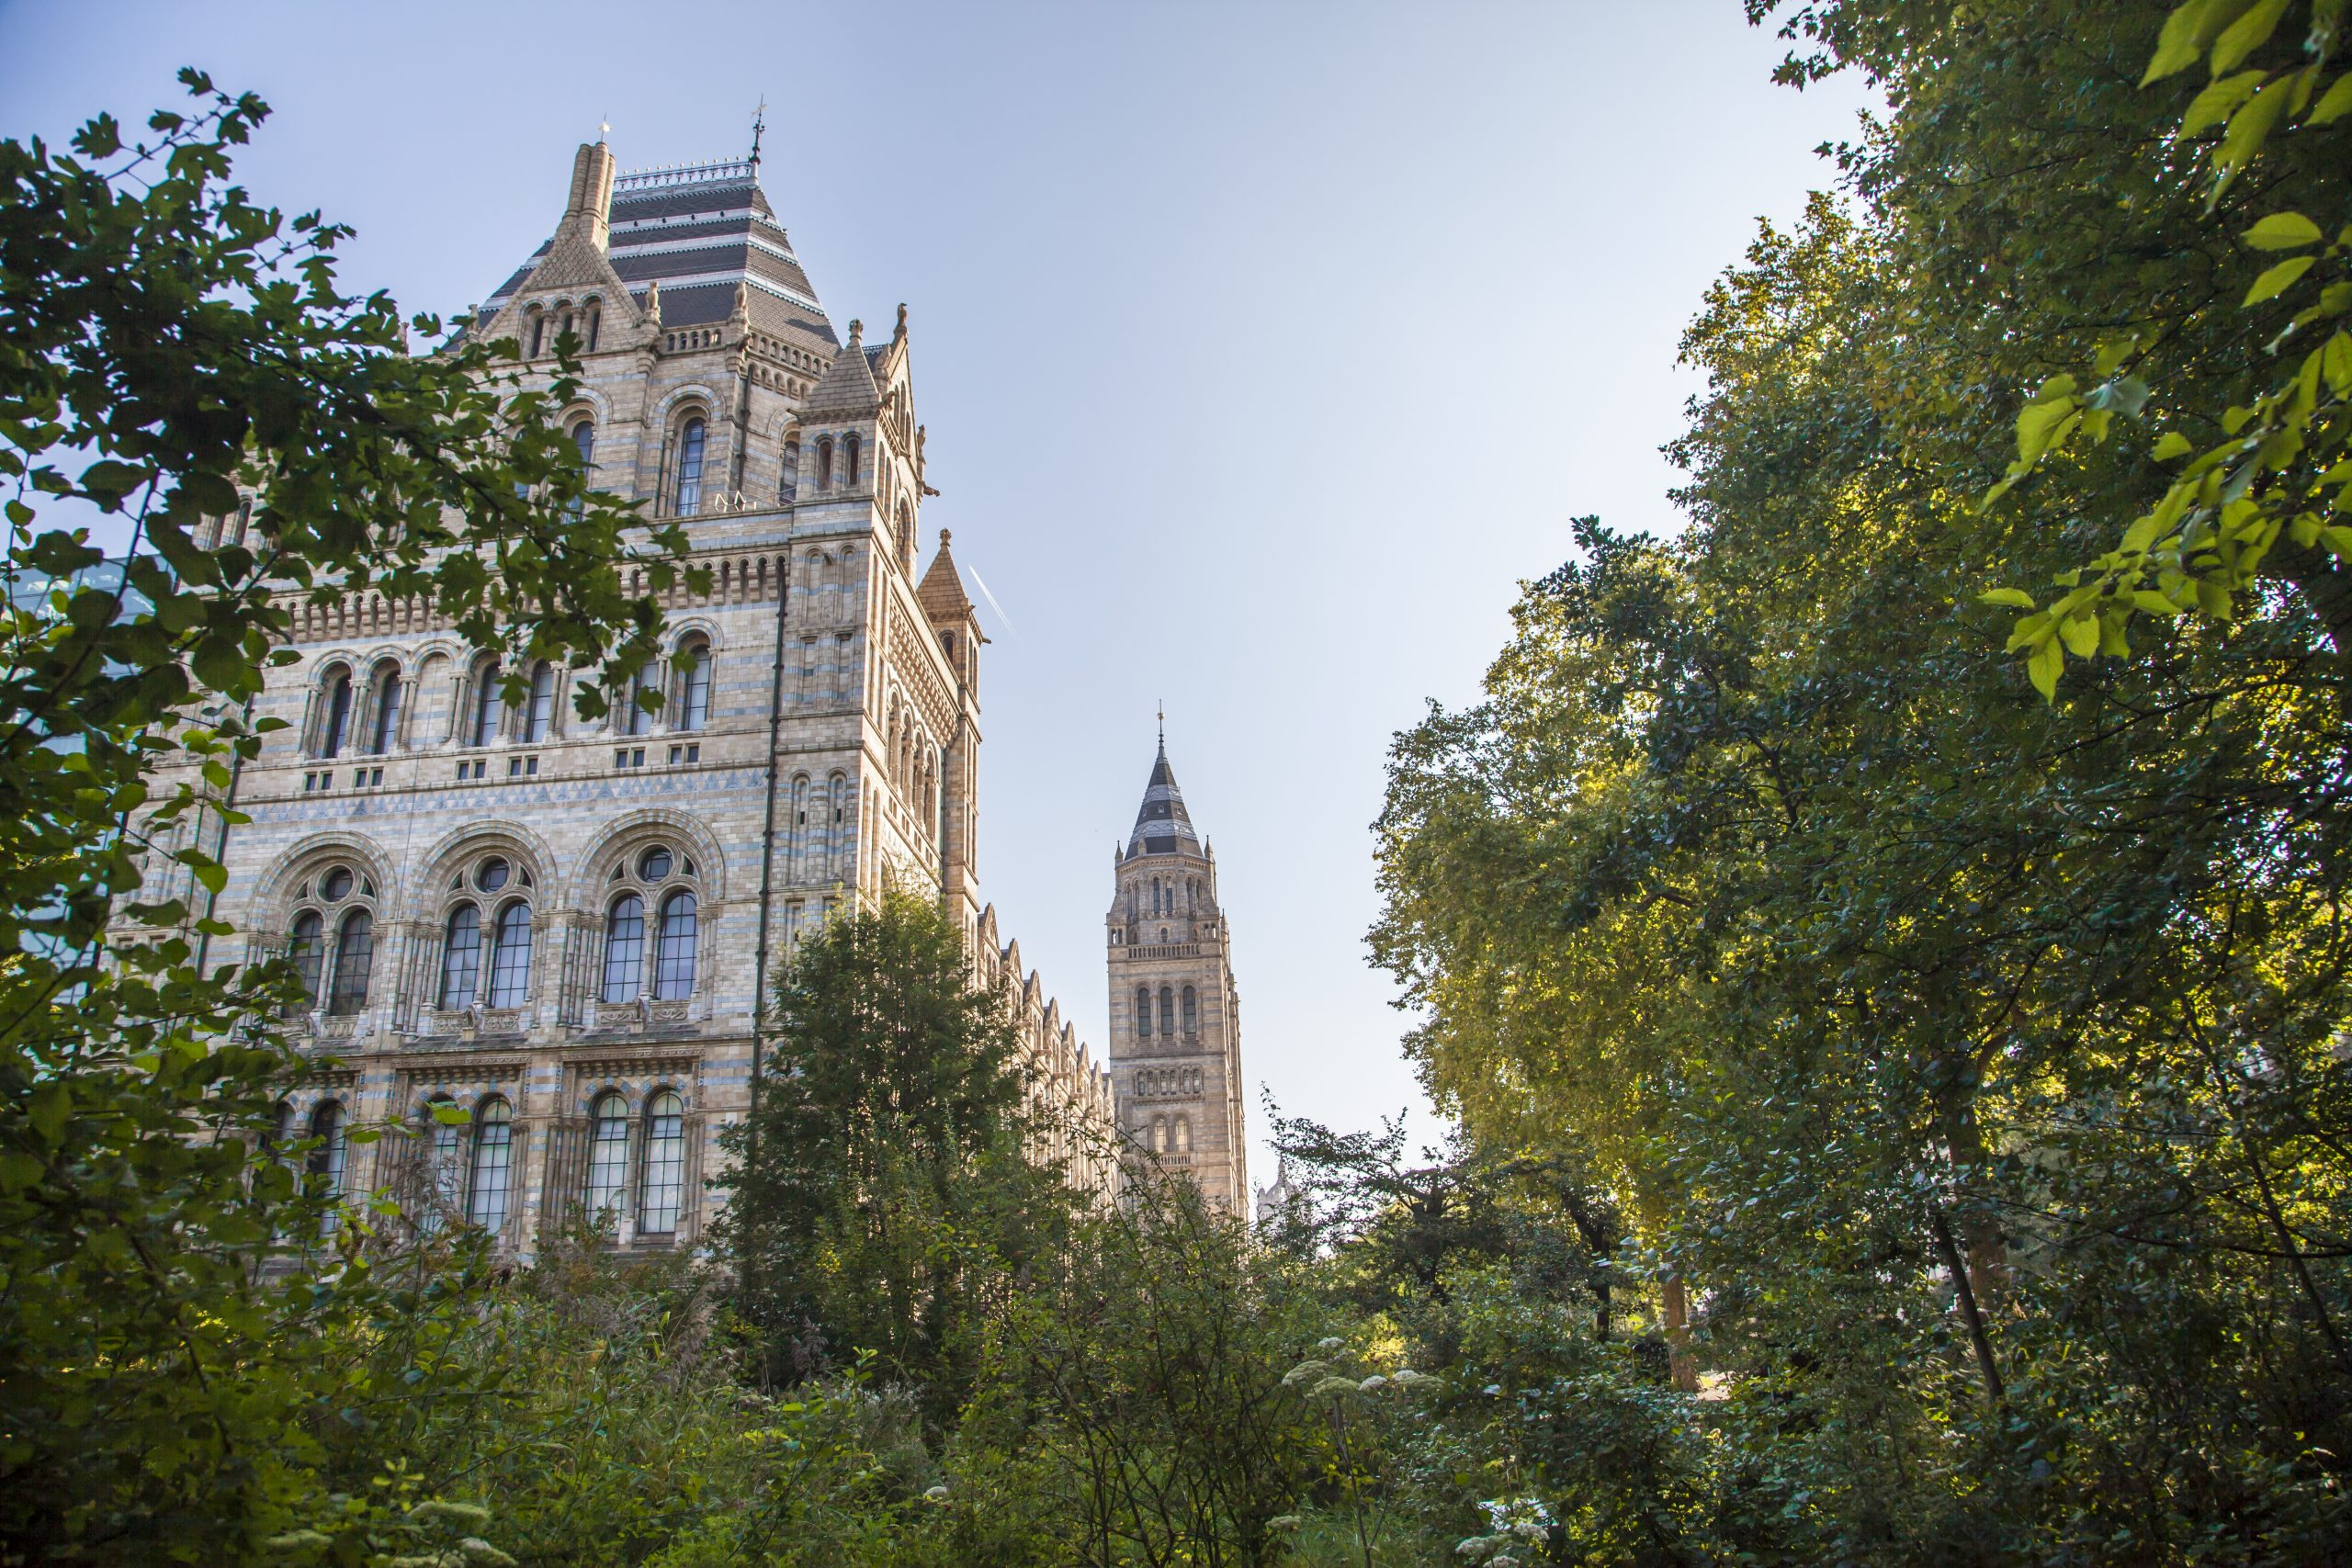 Nationals such as the Natural History Museum in London have been asked to cut executive pay